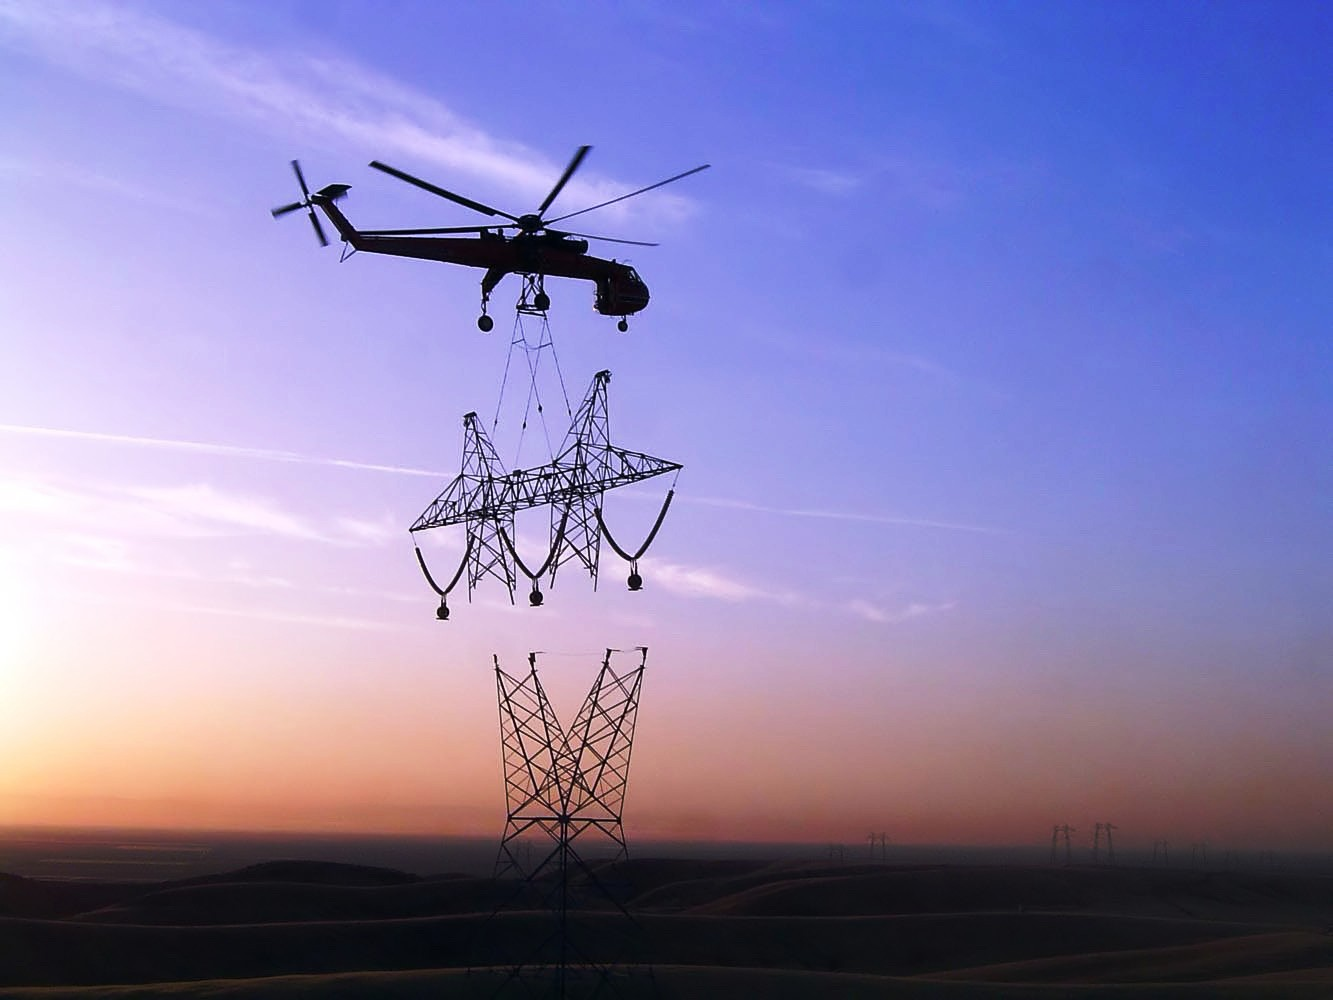 Rent Helicopters Rent Air Crane Helicopters For Heavy